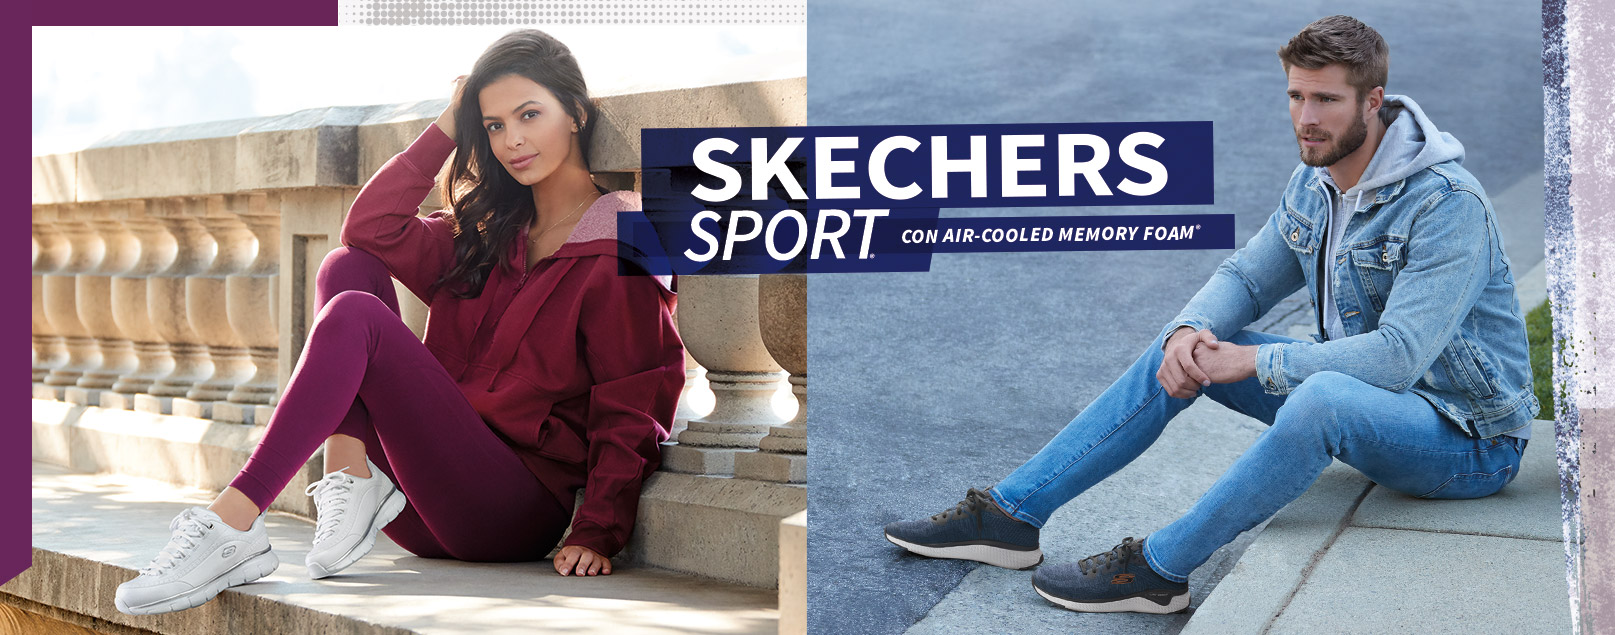 skechers mujer argentina